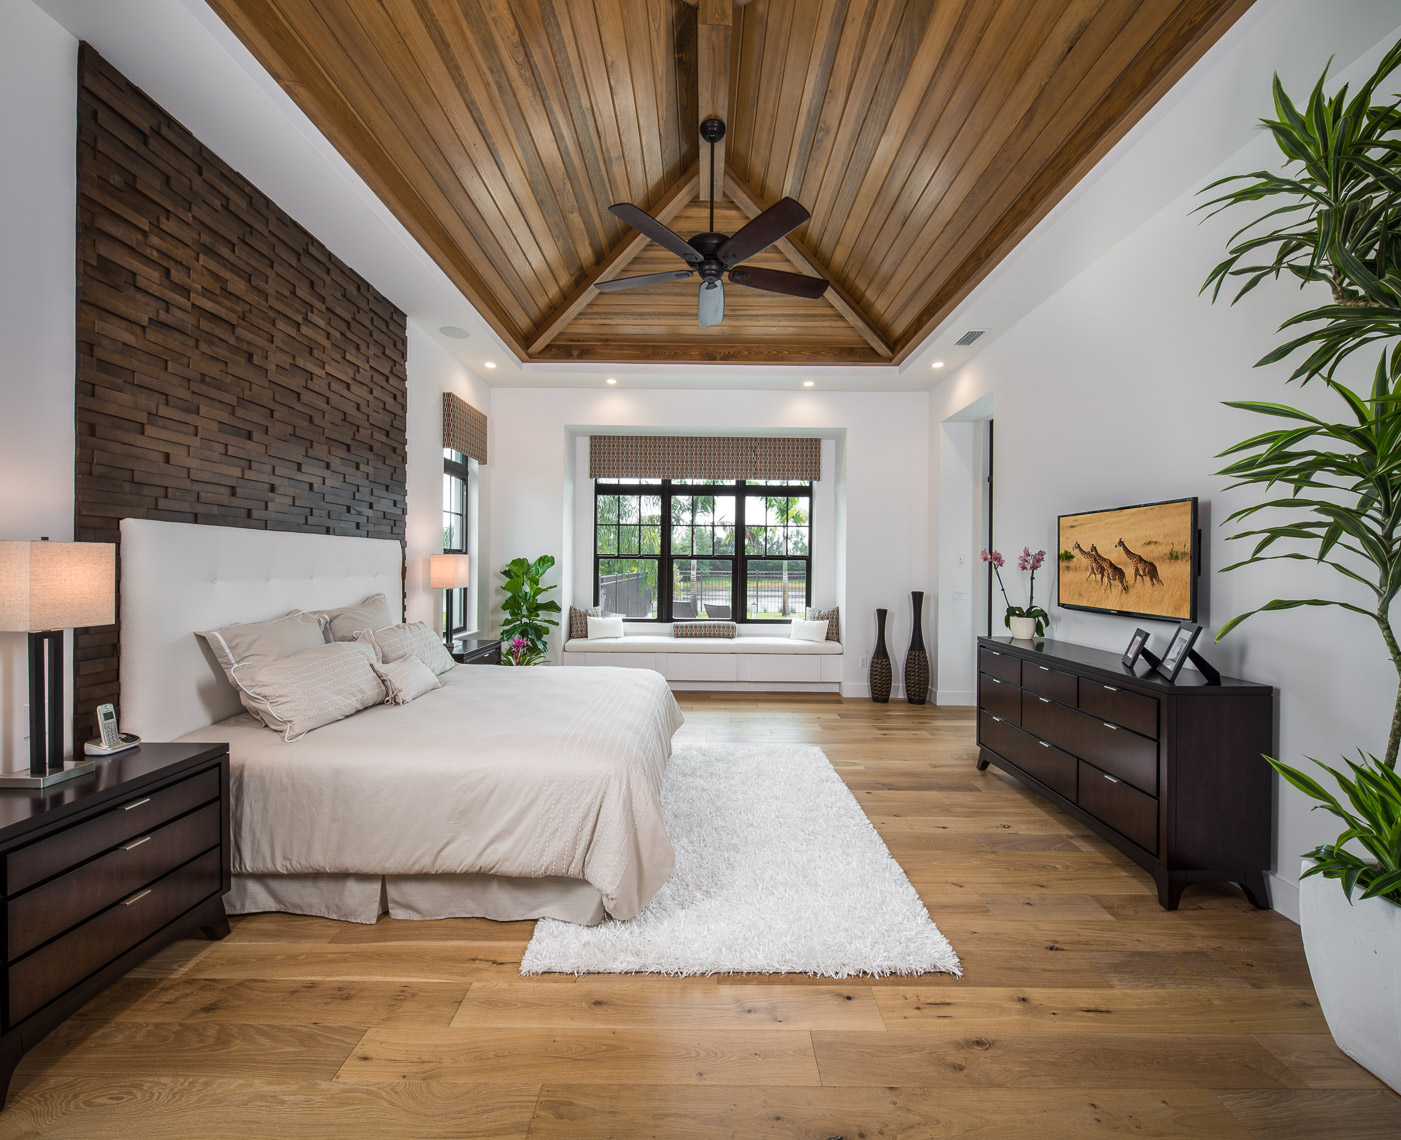 Master Bed Room, Coastal West Indies Architecture - Mark Borosch Photography - Lakewood Ranch, FL